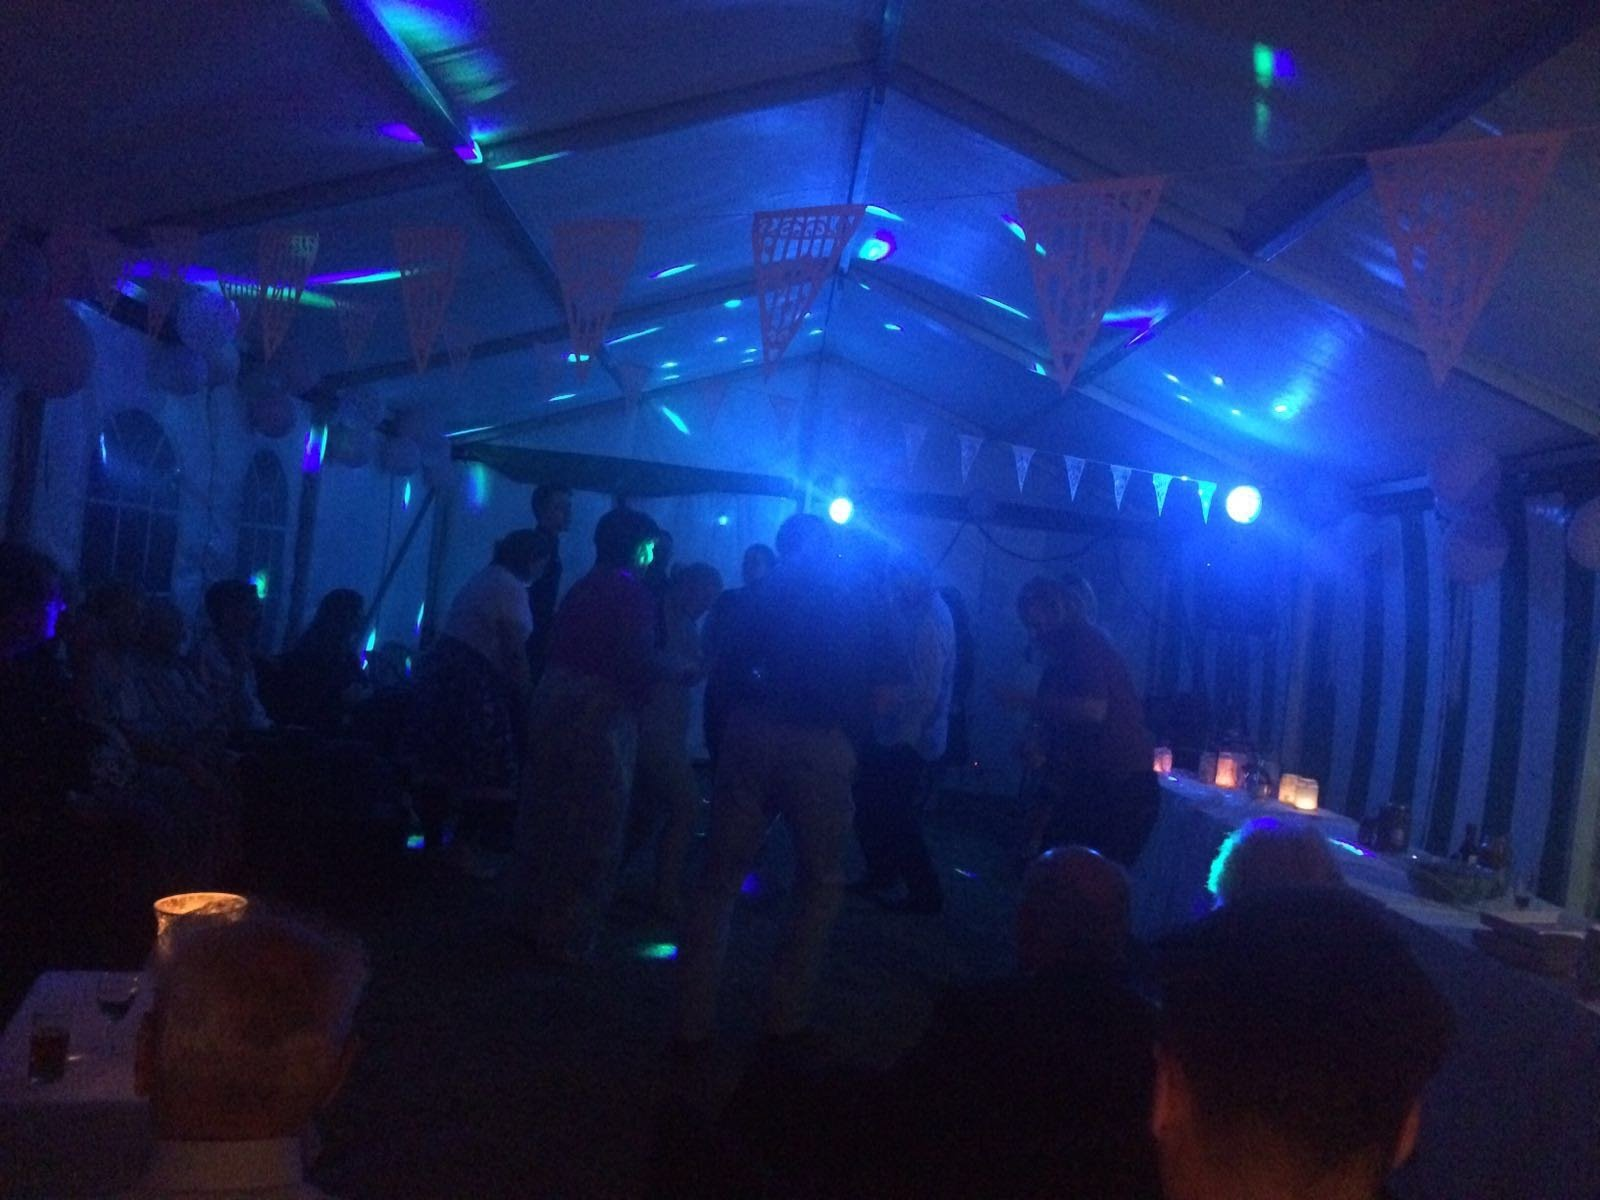 Party in the marquee